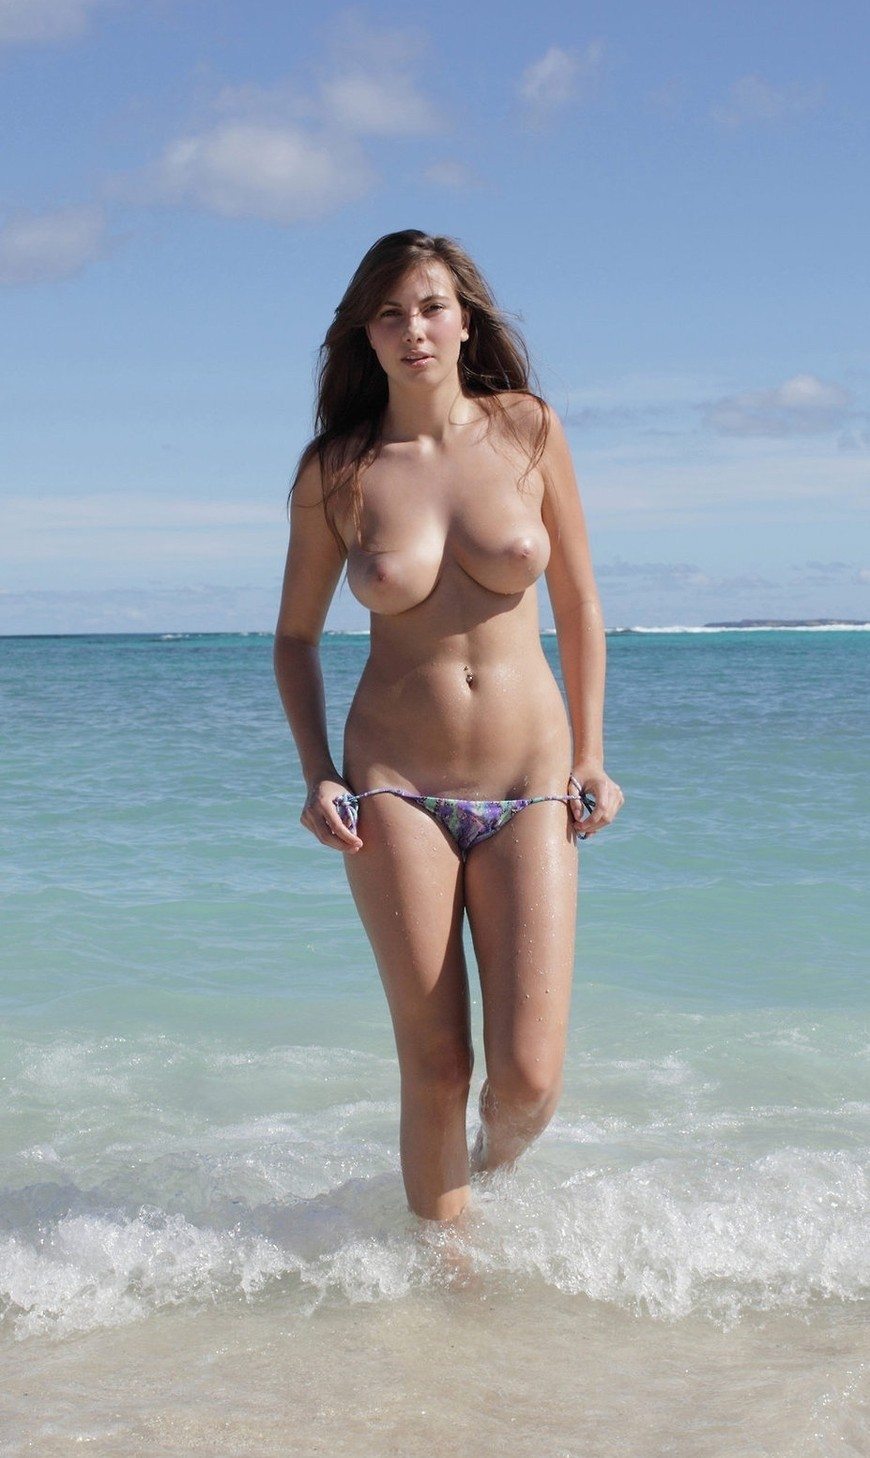 Great beach boobs